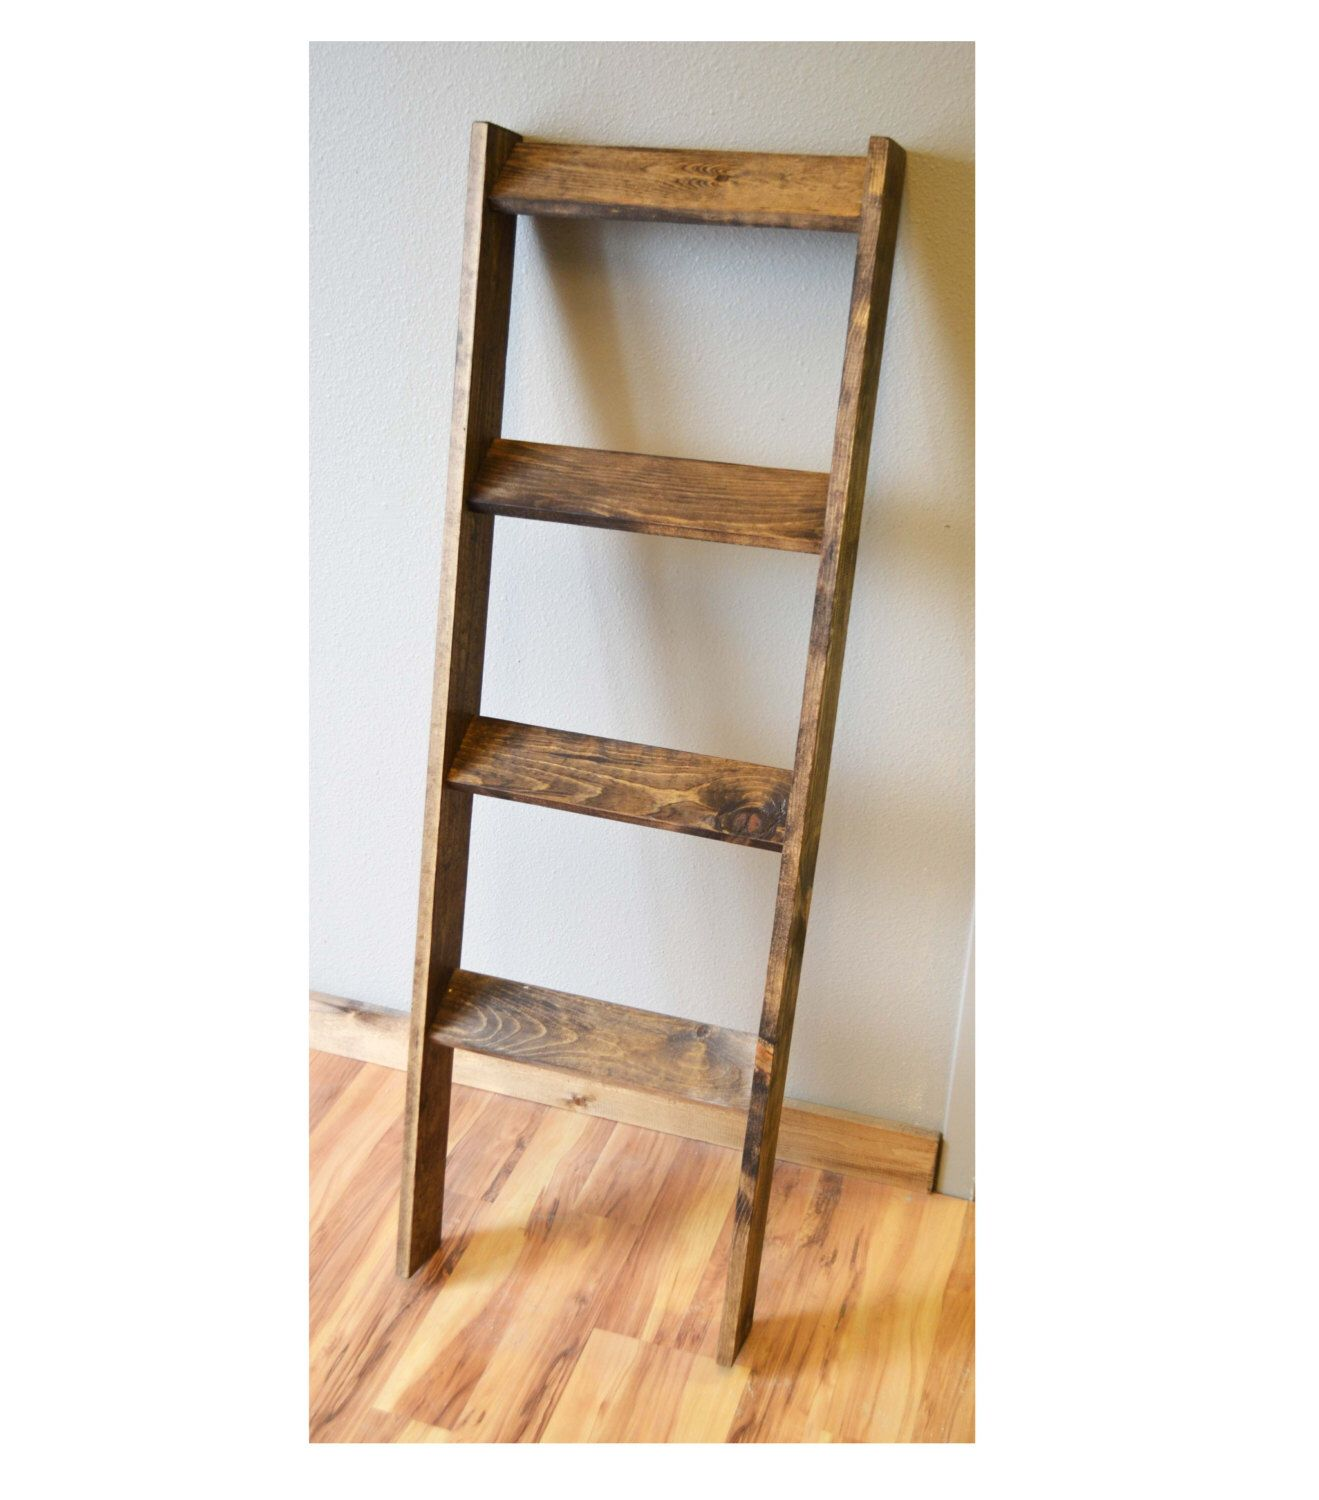 Rustic weathered blanket ladder winter decor gift for her